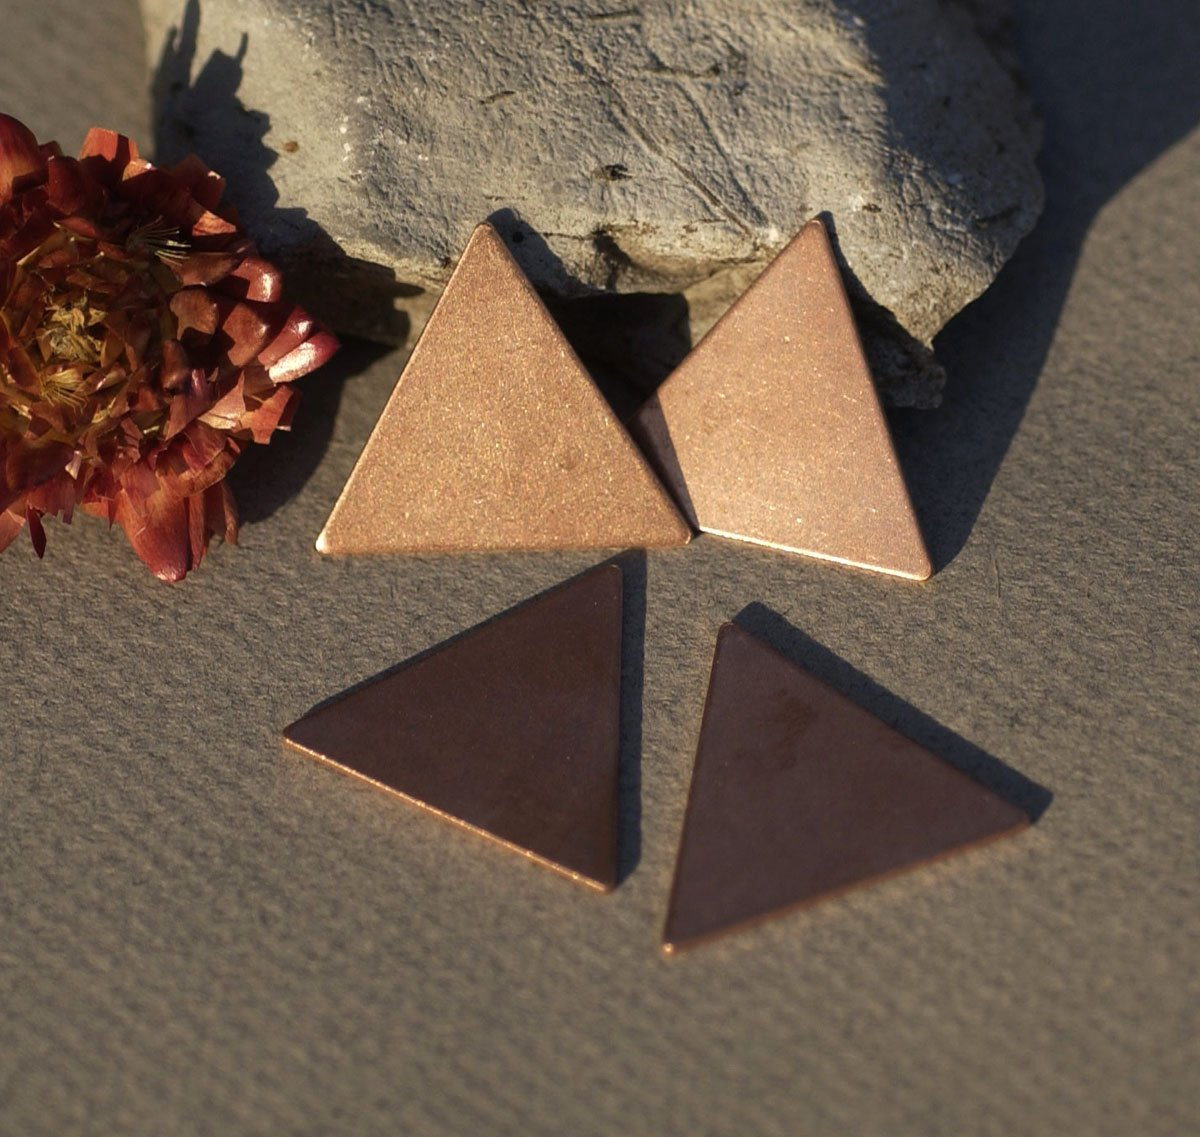 Copper or Brass or Bronze Triangle 25mm 20g for Enameling Stamping Texturing Soldering Blanks - 5 pieces